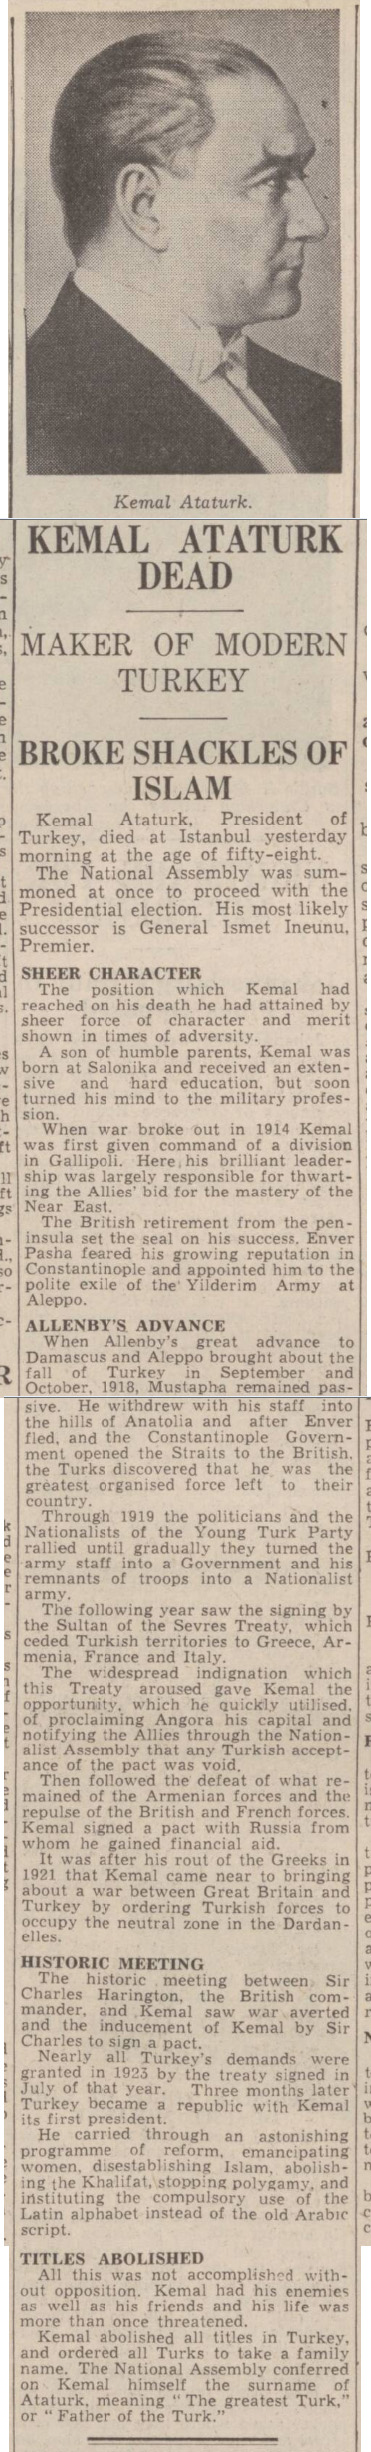 historical newspaper report on ataturk